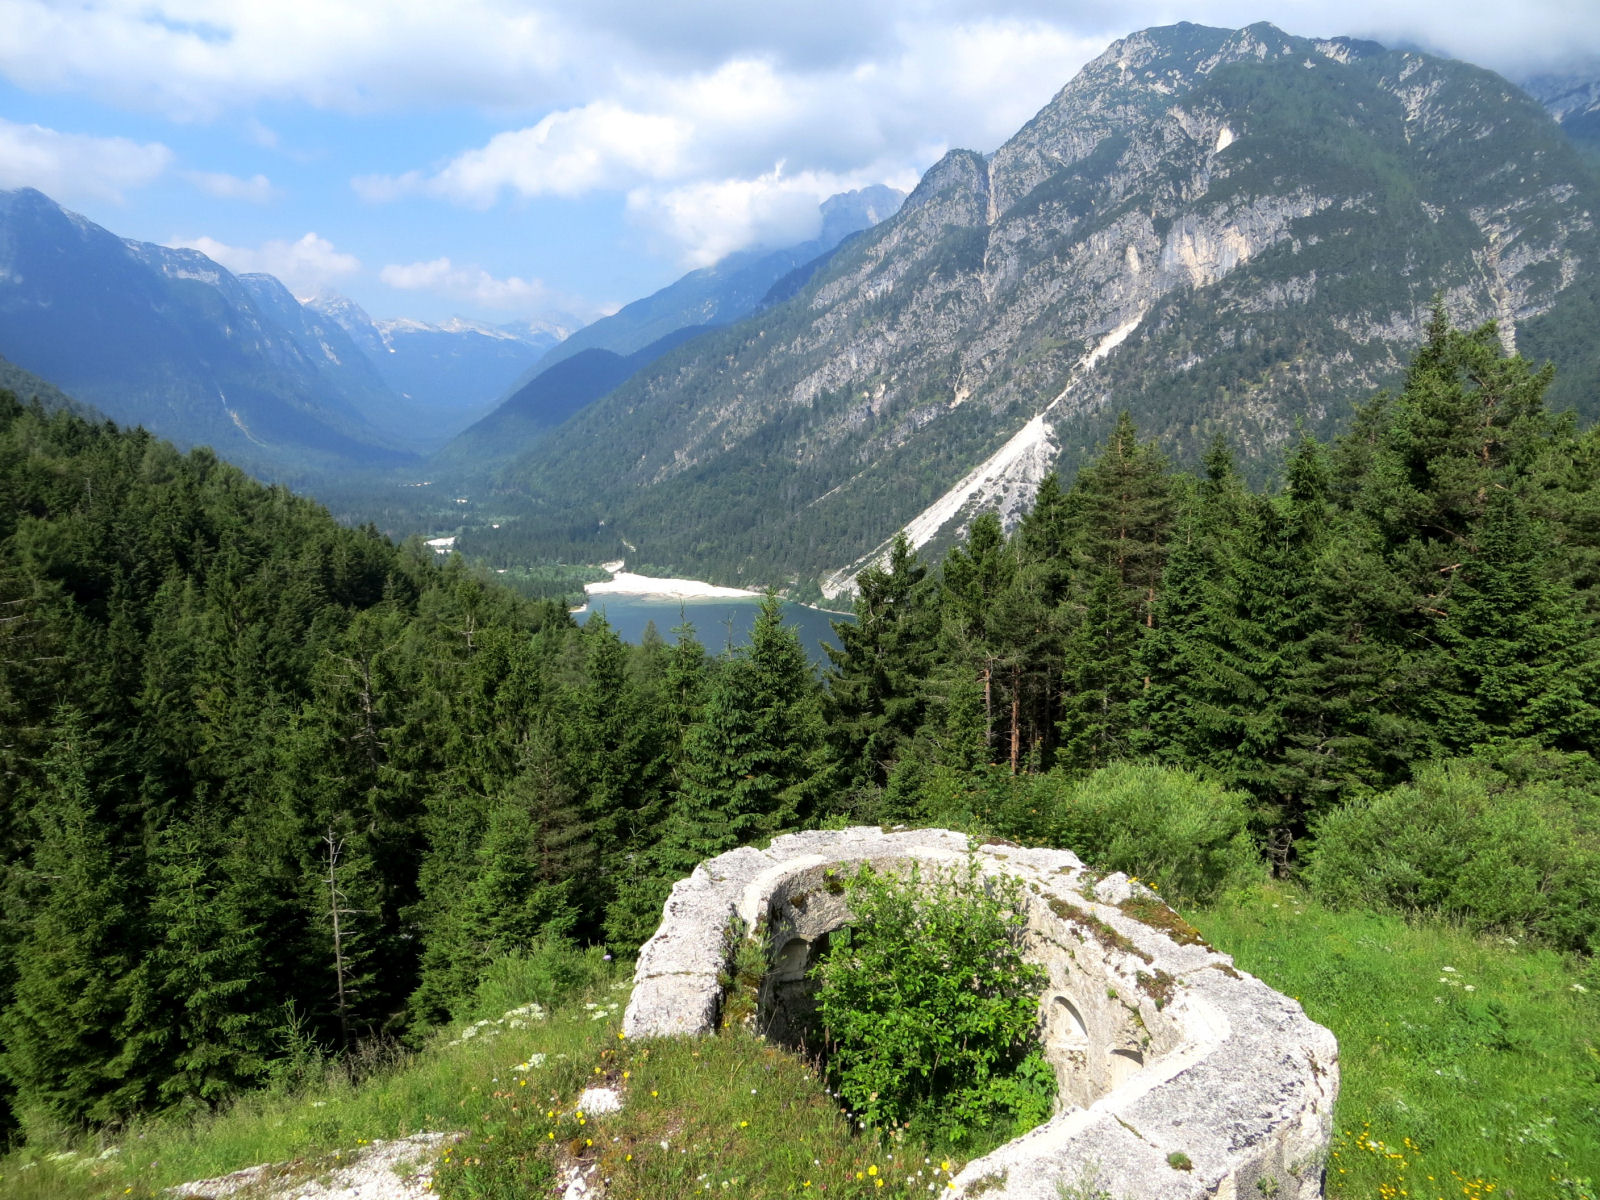 View of the Predil lake from the Predil mountain pass